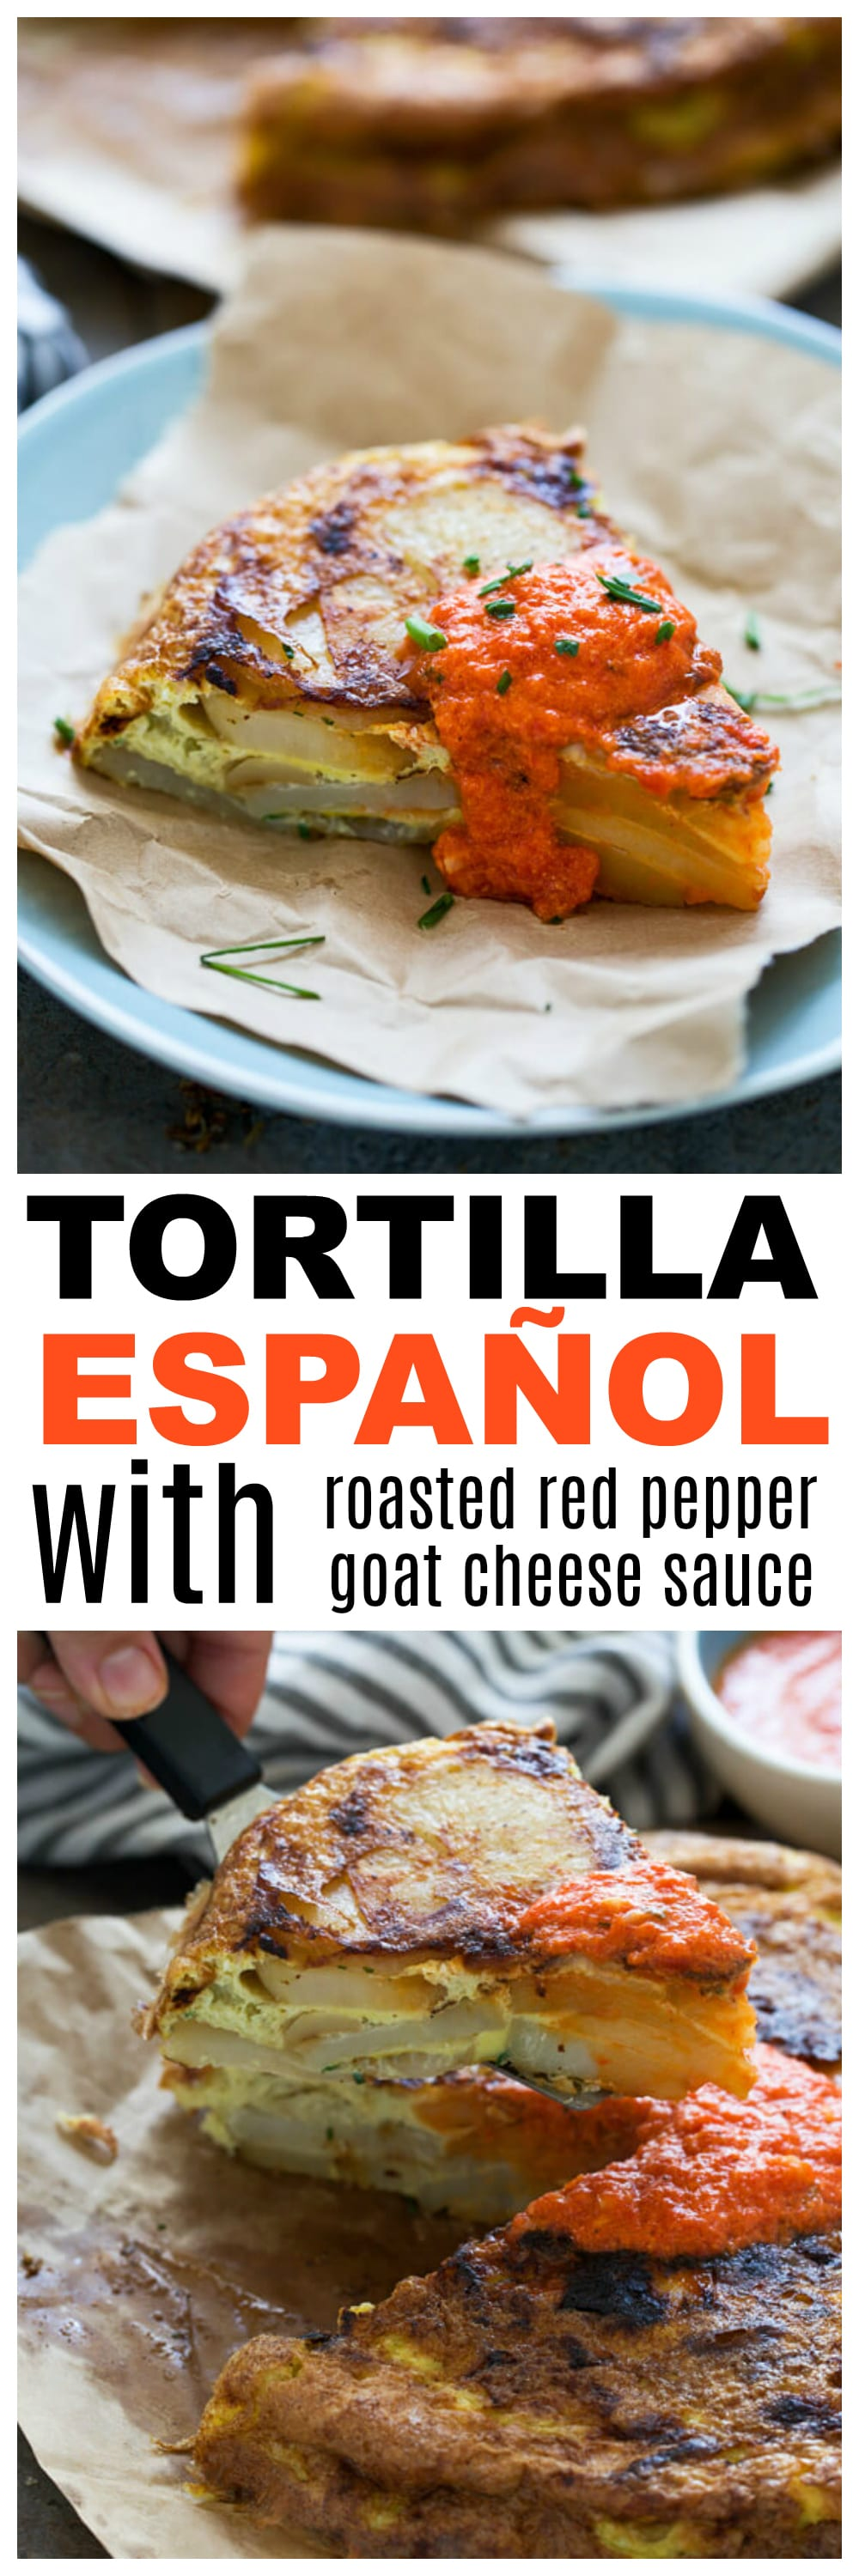 Tortilla Española with Roasted Red Pepper Goat Cheese Sauce